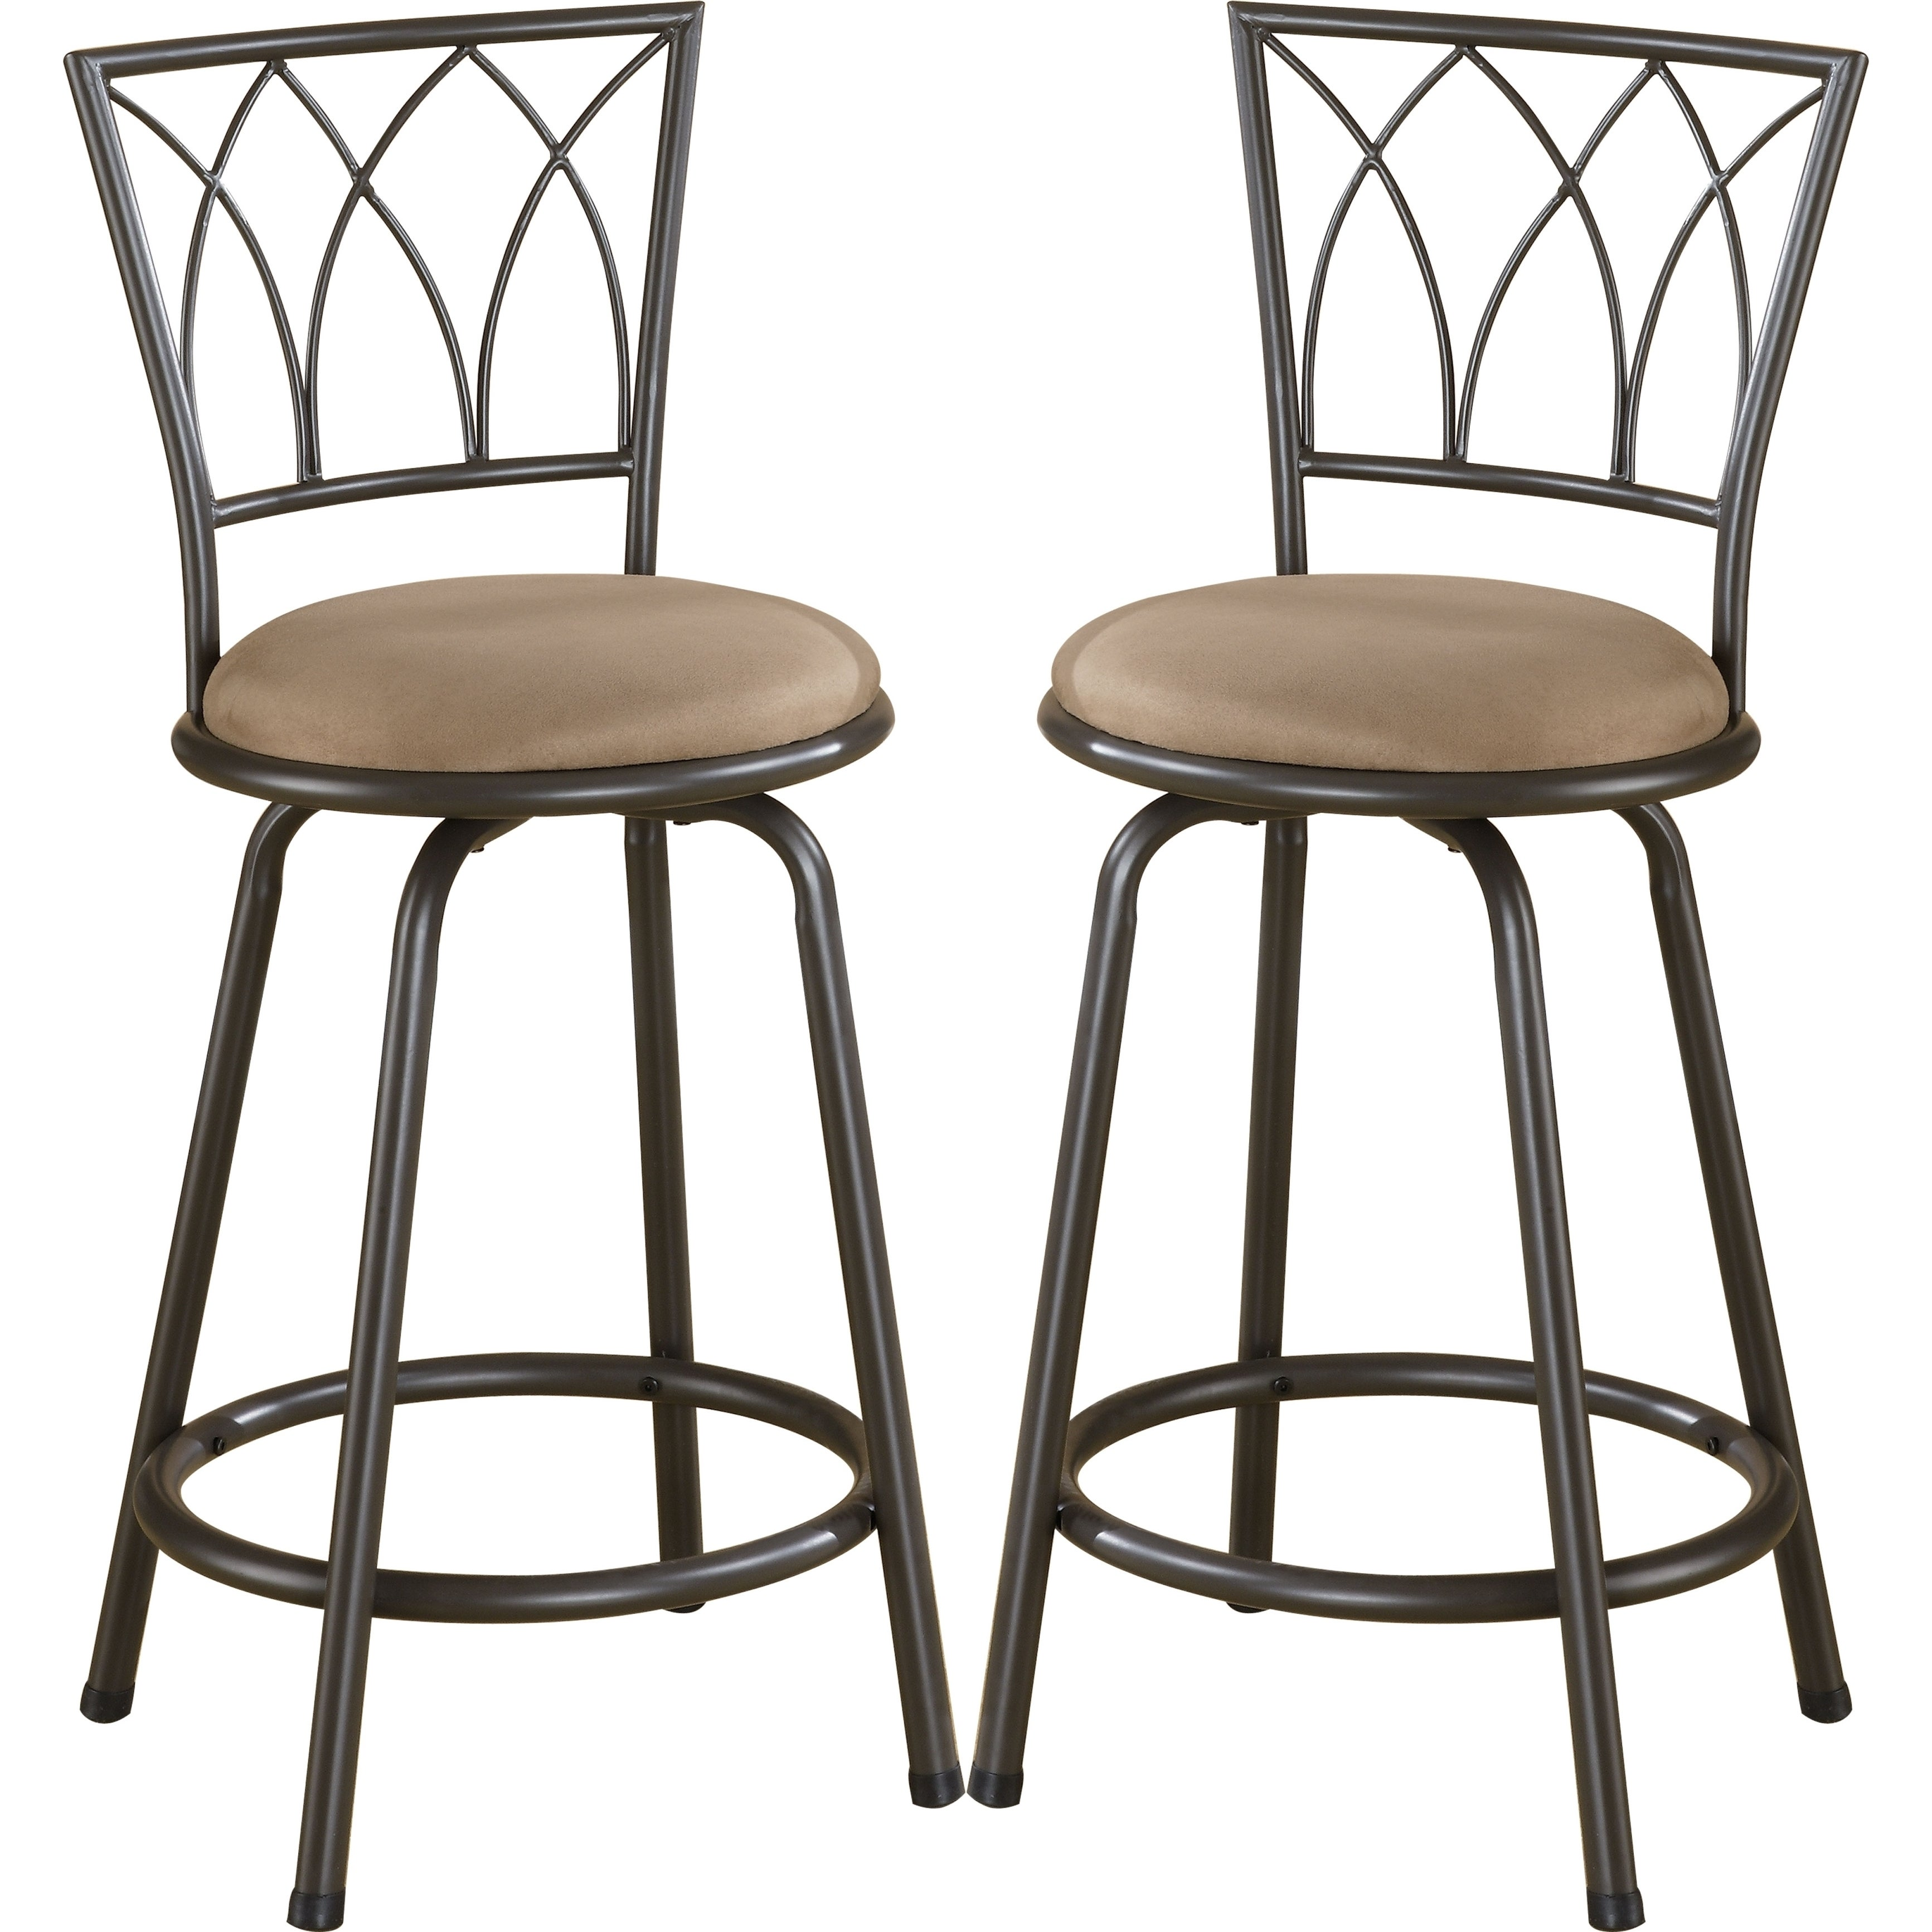 Wondrous Austin Metal Counter Height Stool With Upholstered Seat Set Of 2 Gmtry Best Dining Table And Chair Ideas Images Gmtryco